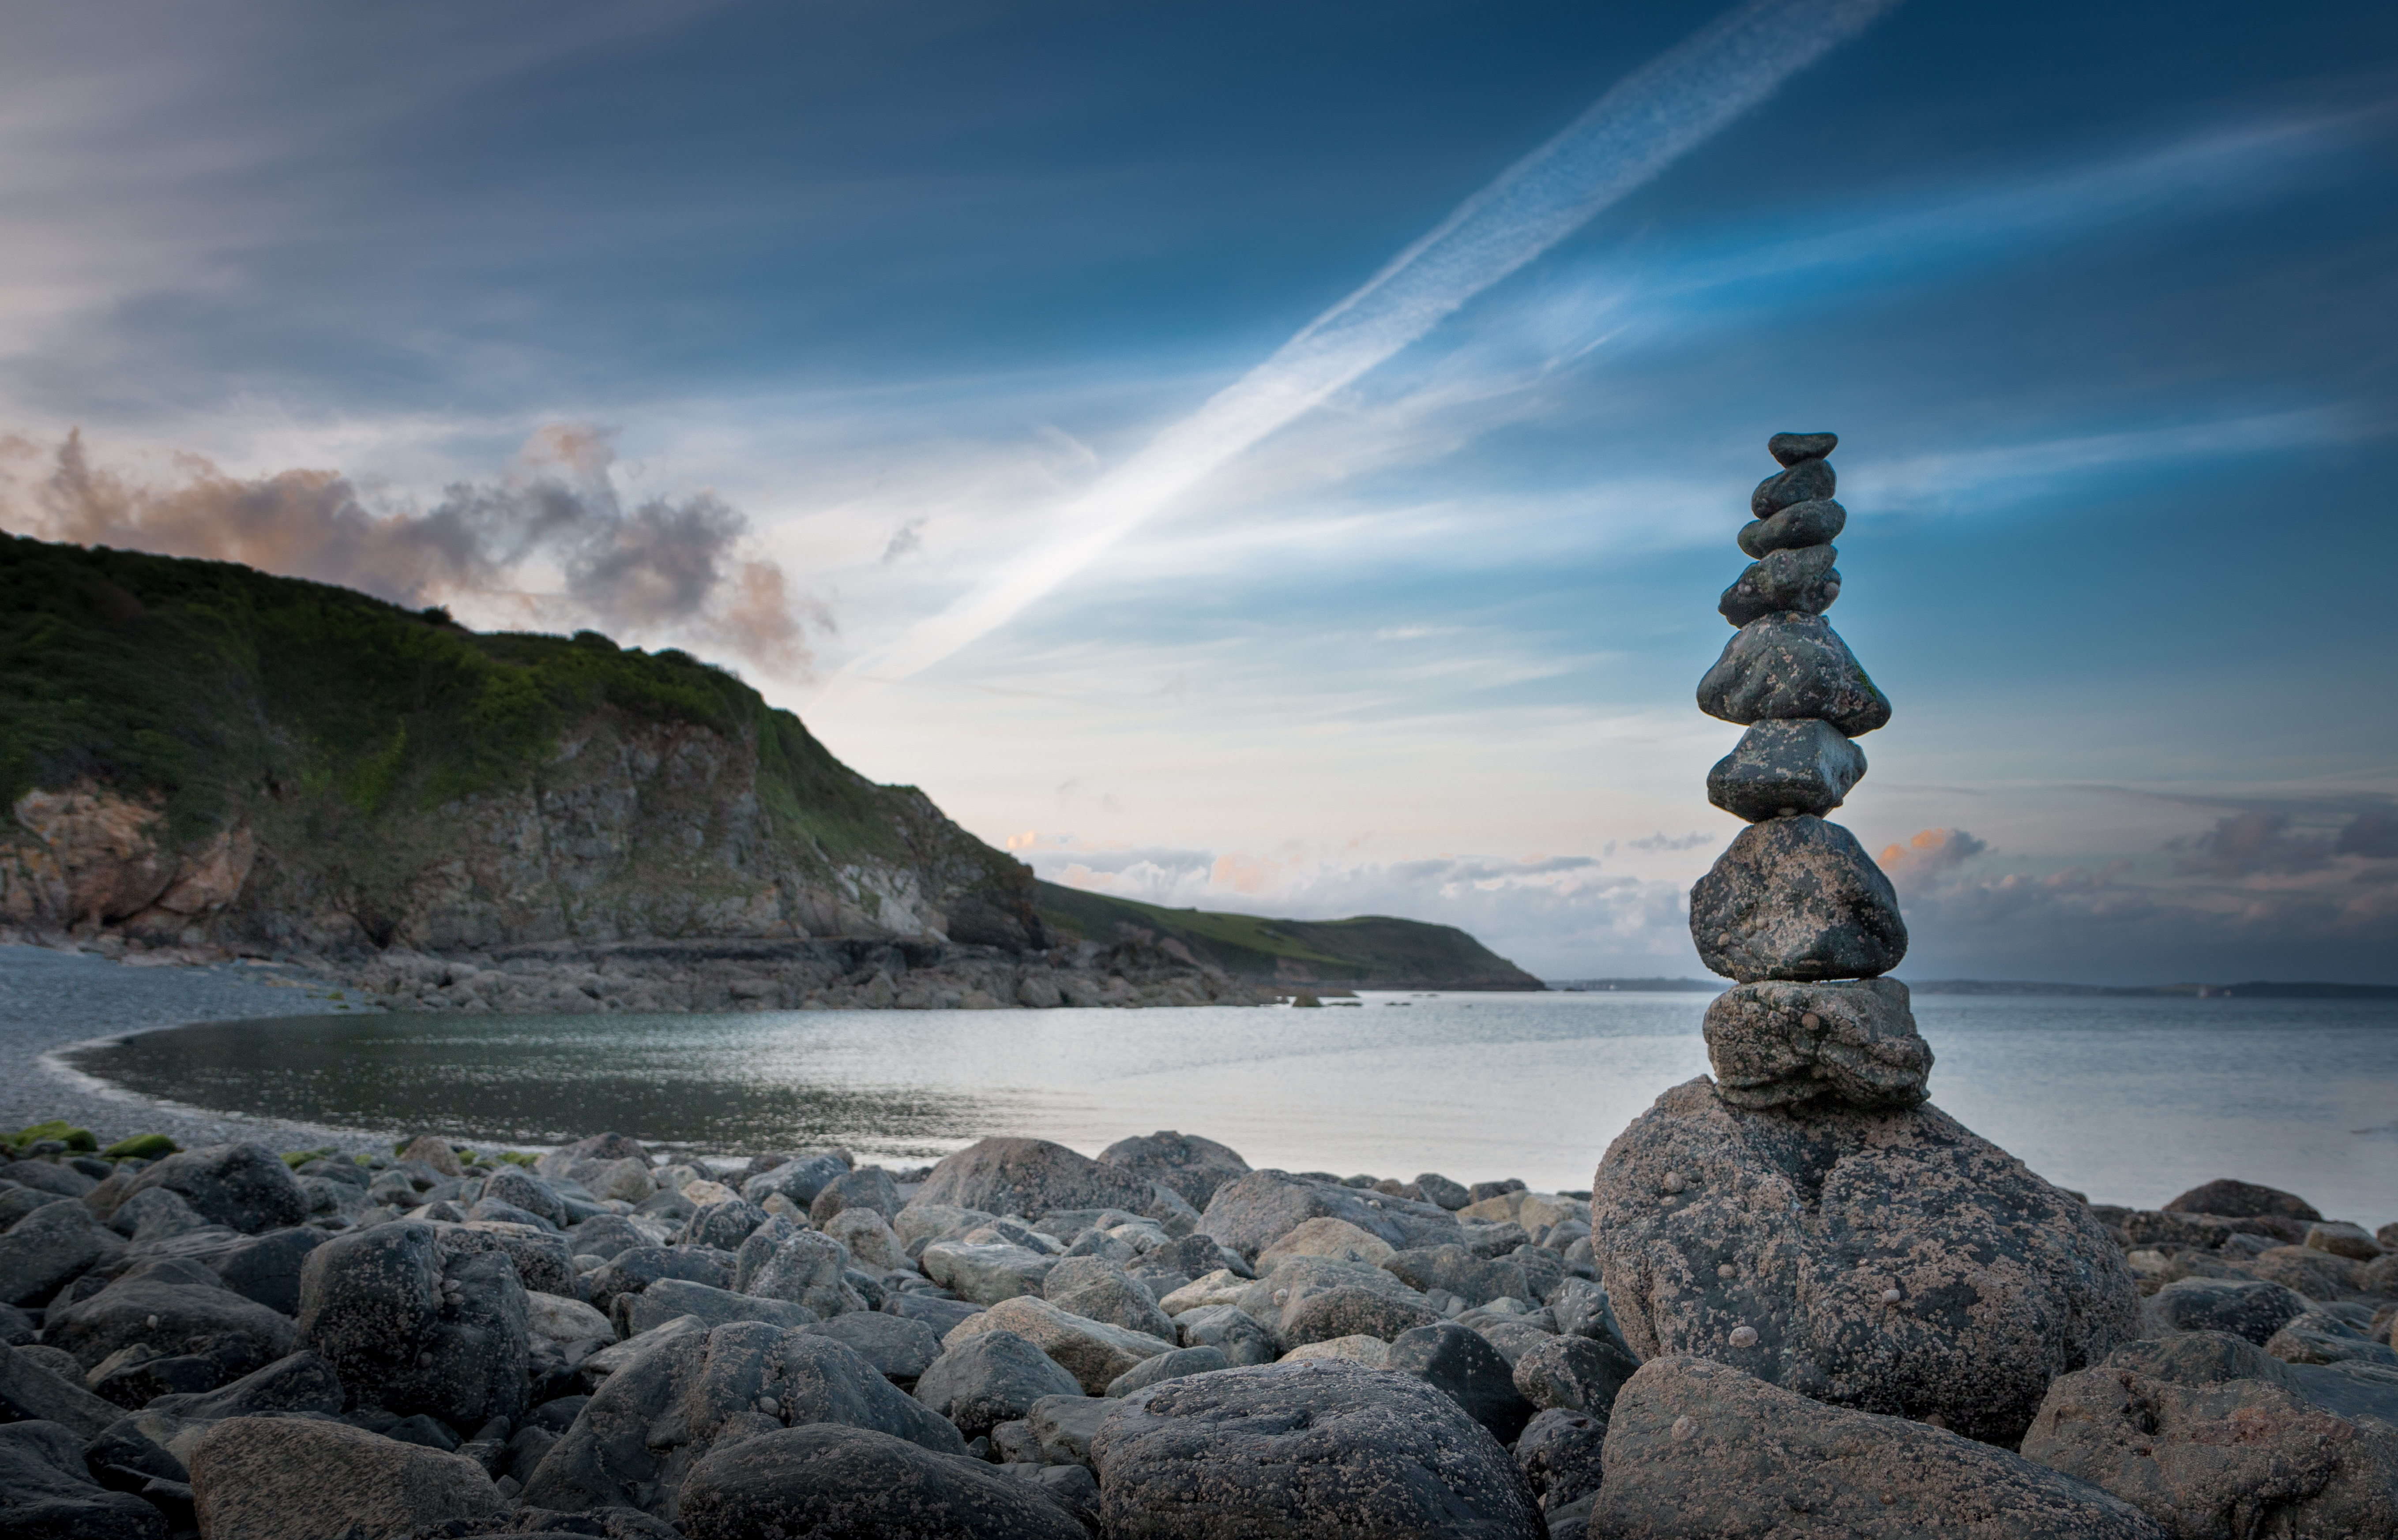 109302 download wallpaper Nature, Stones, Sky, Balance, Lumps, Blocks screensavers and pictures for free